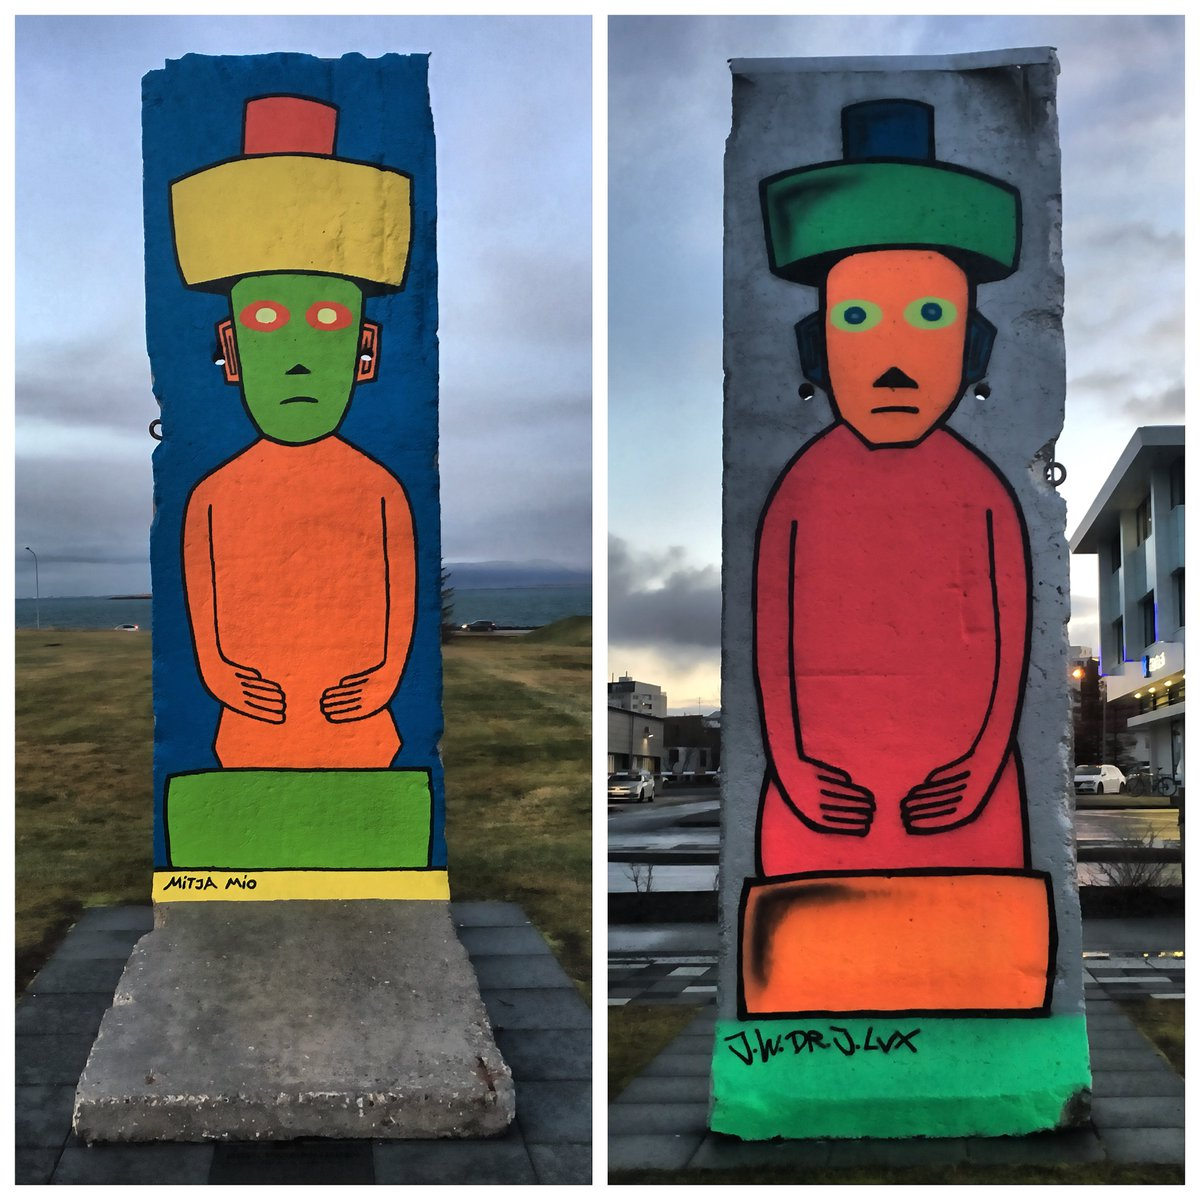 World Freedom Day commemorating the fall of #BerlinWall #Reykjavik #Iceland https://t.co/IJW5dh1HDS